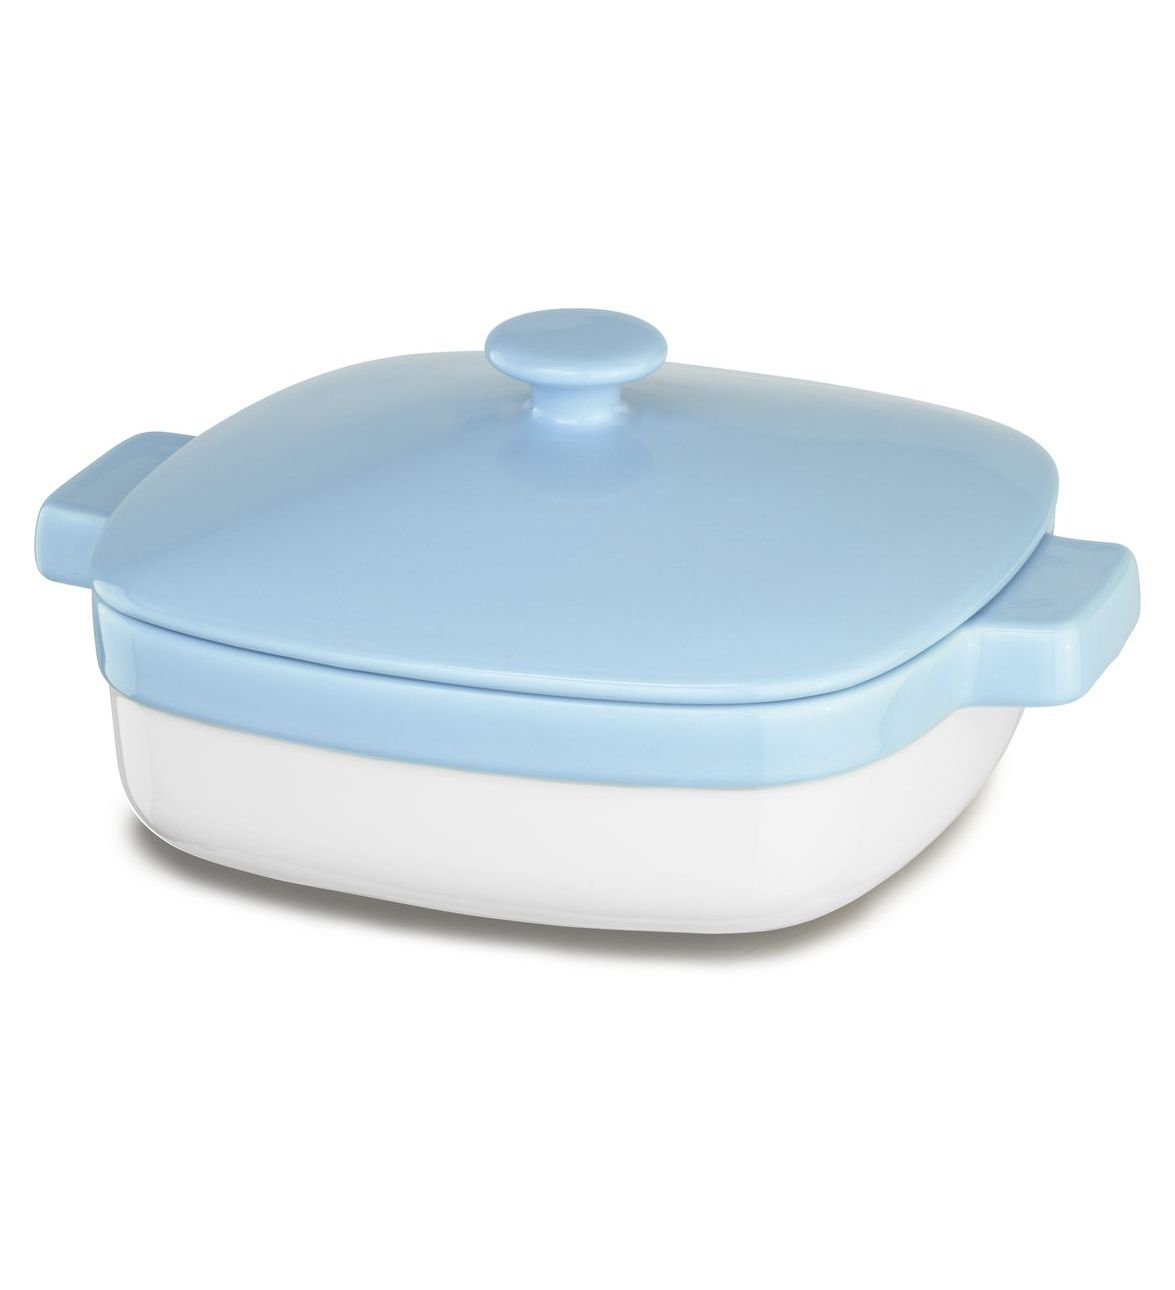 KitchenAid® Ceramic 2.8-Quart Casserole Dish with Lid